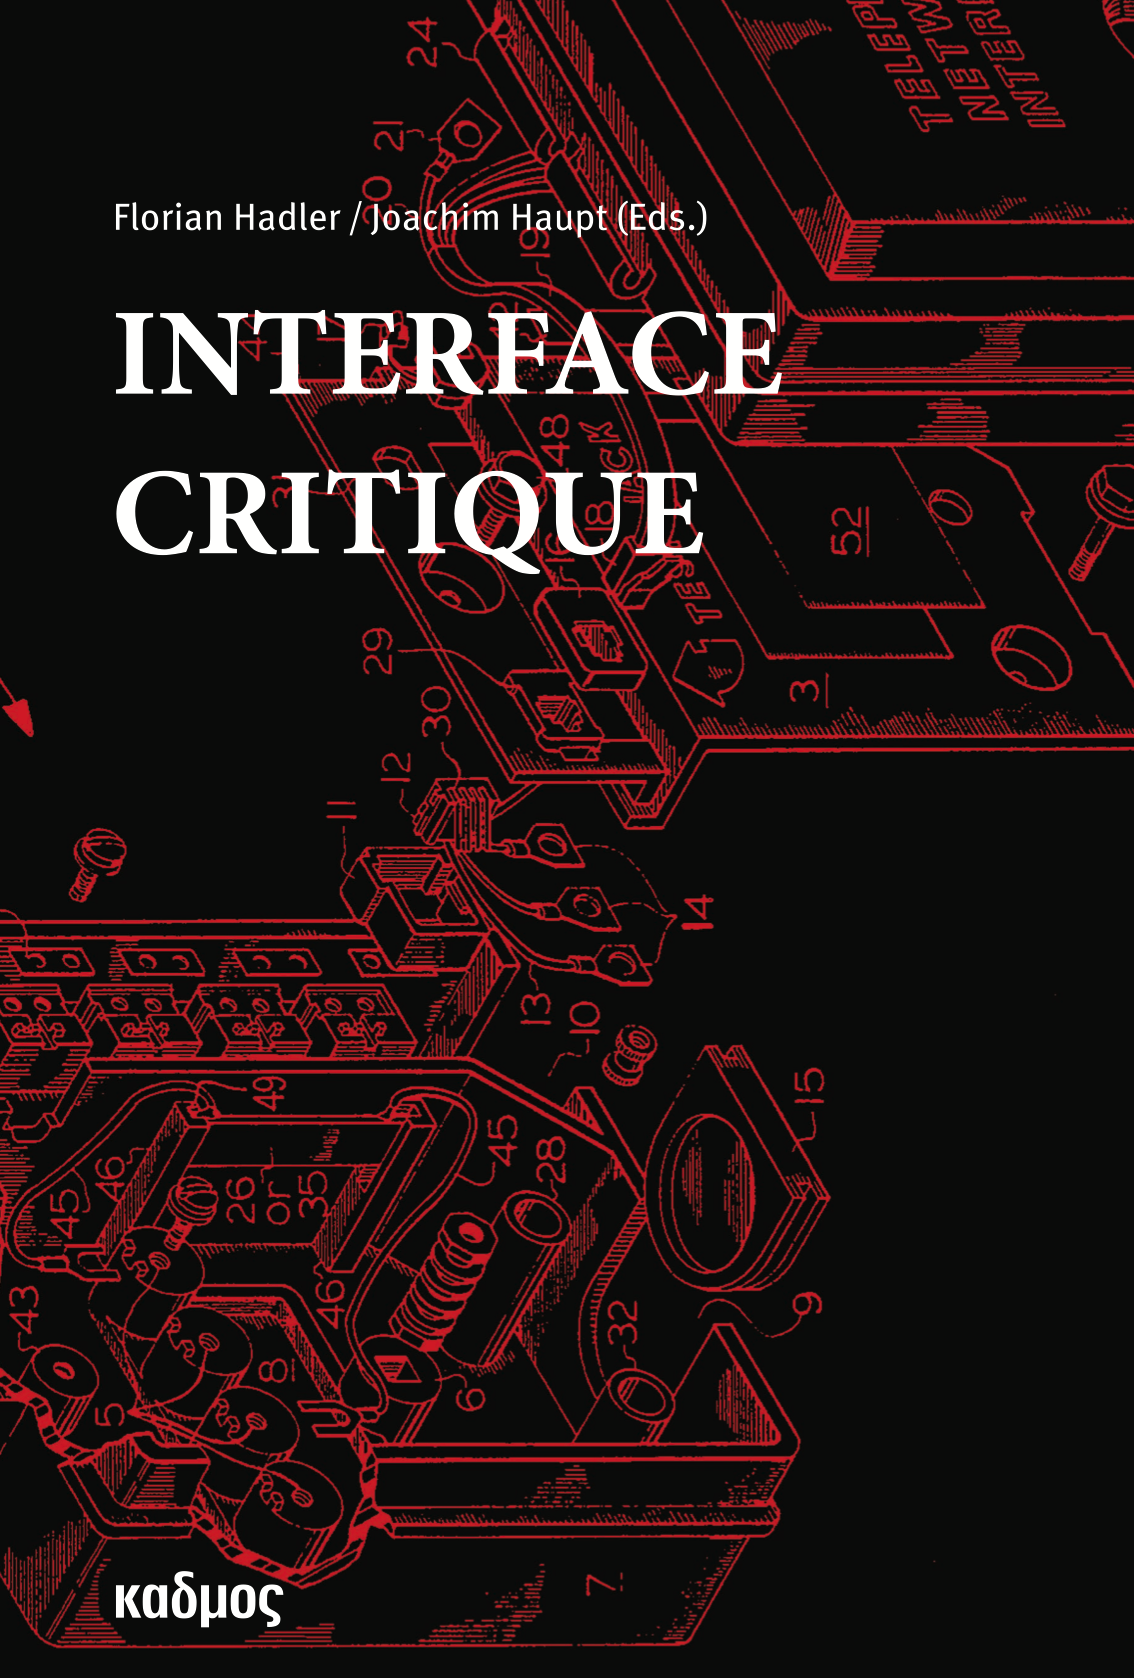 INTERFACE CRITIQUE start 1